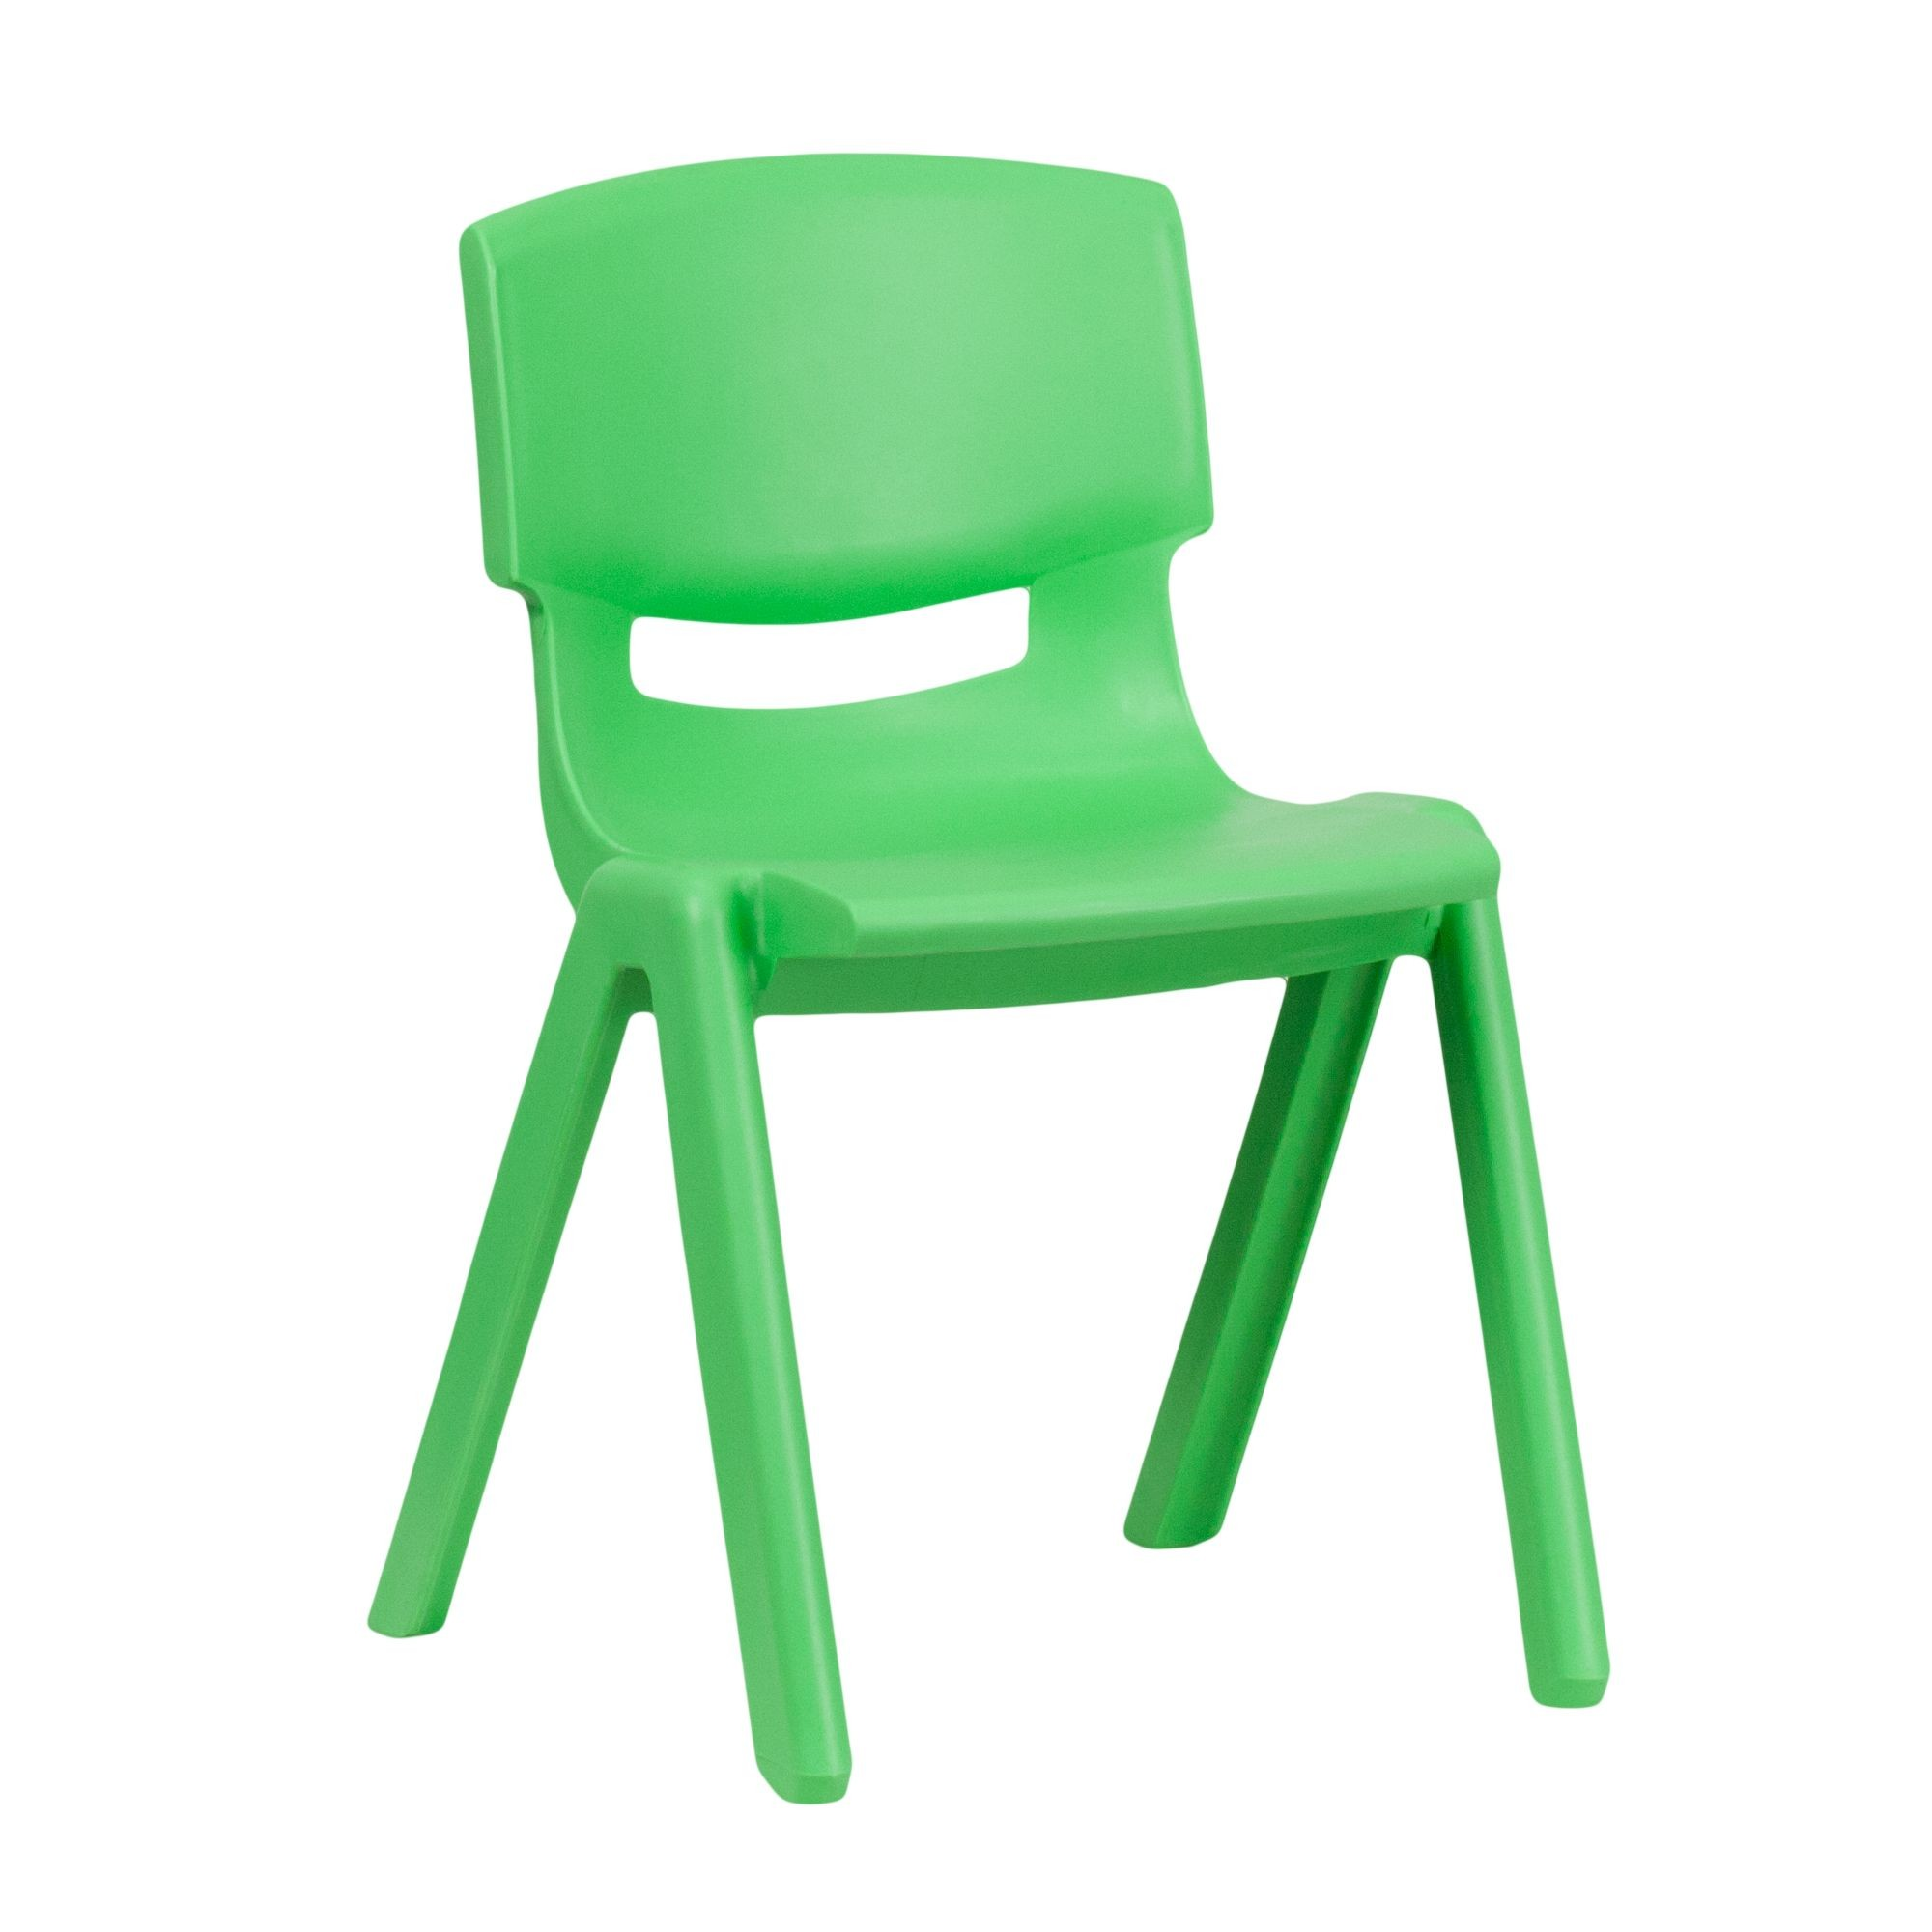 Green Plastic Stackable School Chair with 13.25'' Seat Height